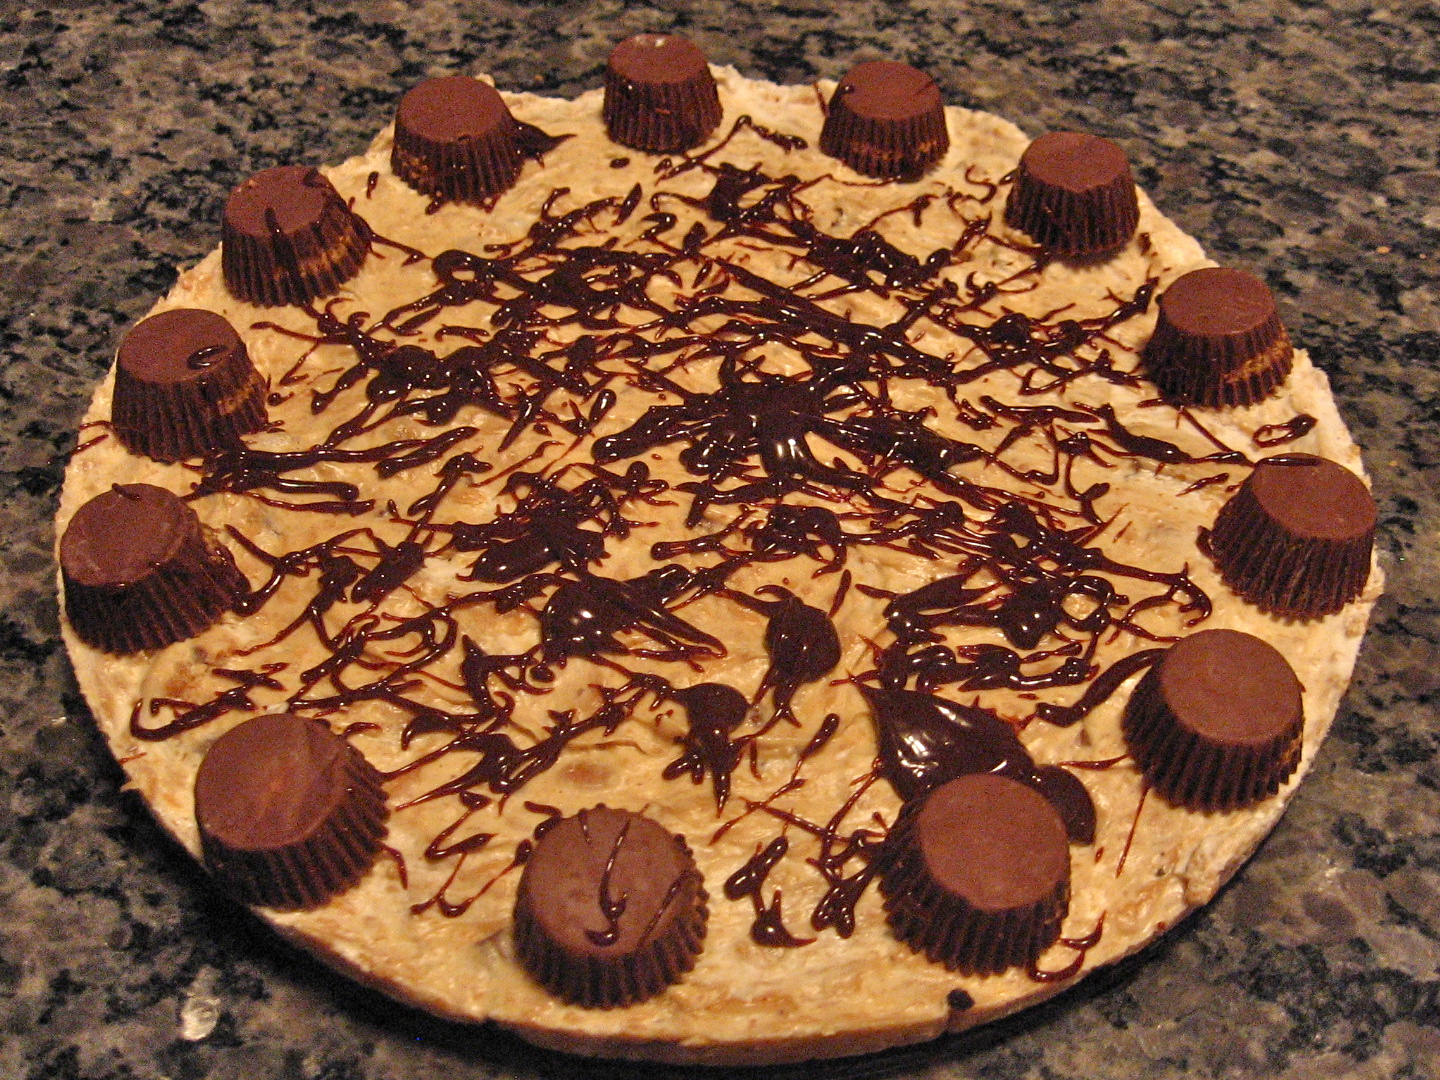 Cooking with Mandy: Frozen Reese's Peanut Butter Pie